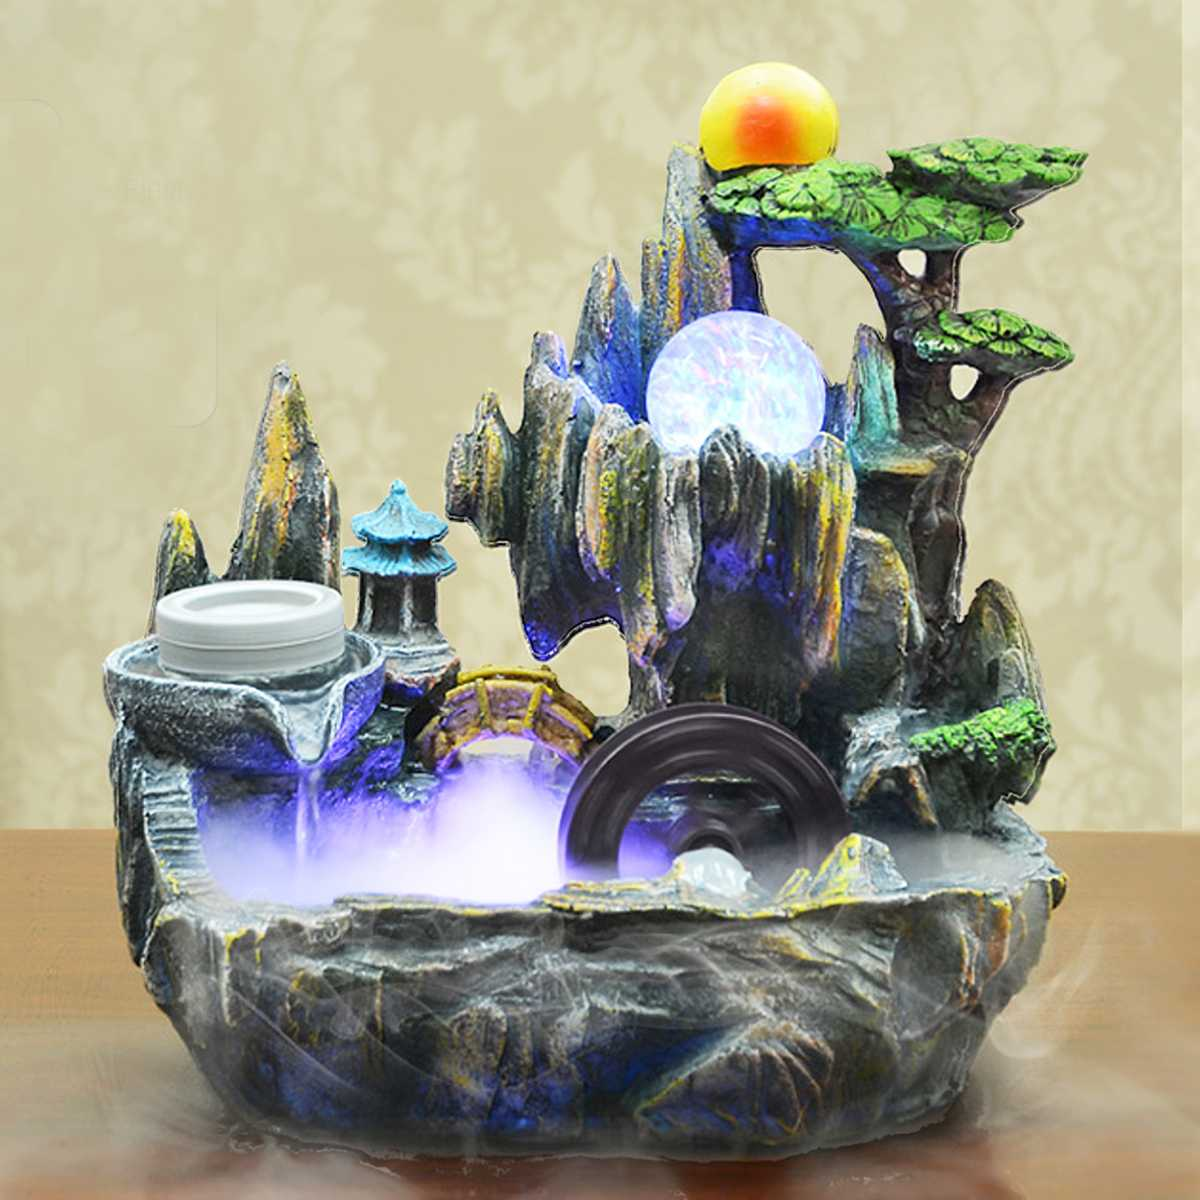 220V Creative Rockery Flowing <font><b>Water</b></font> <font><b>Fountain</b></font> Lucky Feng Shui Office Desk Ornaments <font><b>Home</b></font> <font><b>Decor</b></font> Air Humidifier Aromatherapy Fog image